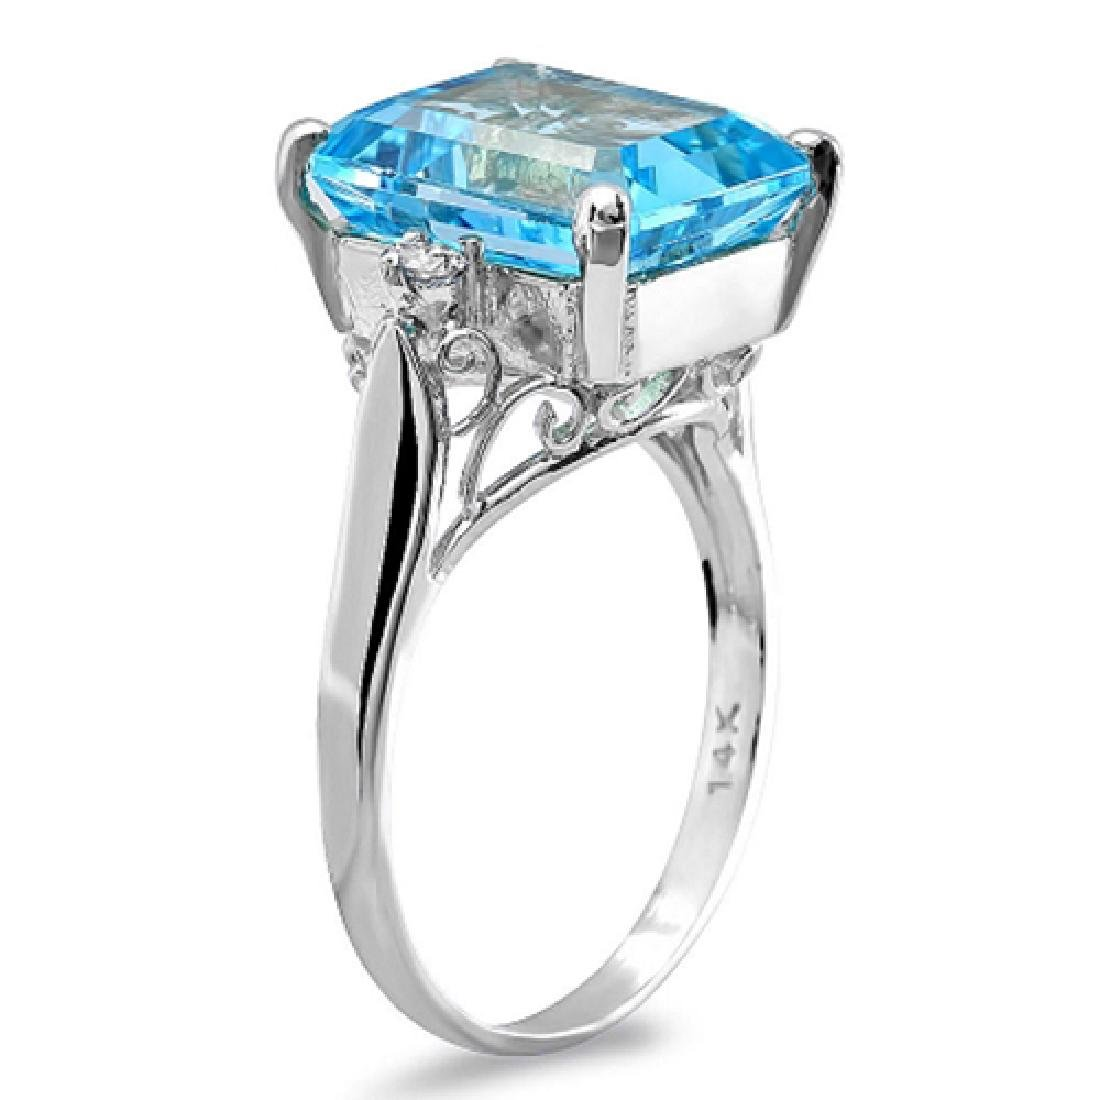 8.00 Carat Natural Topaz 18K Solid White Gold Diamond - 2